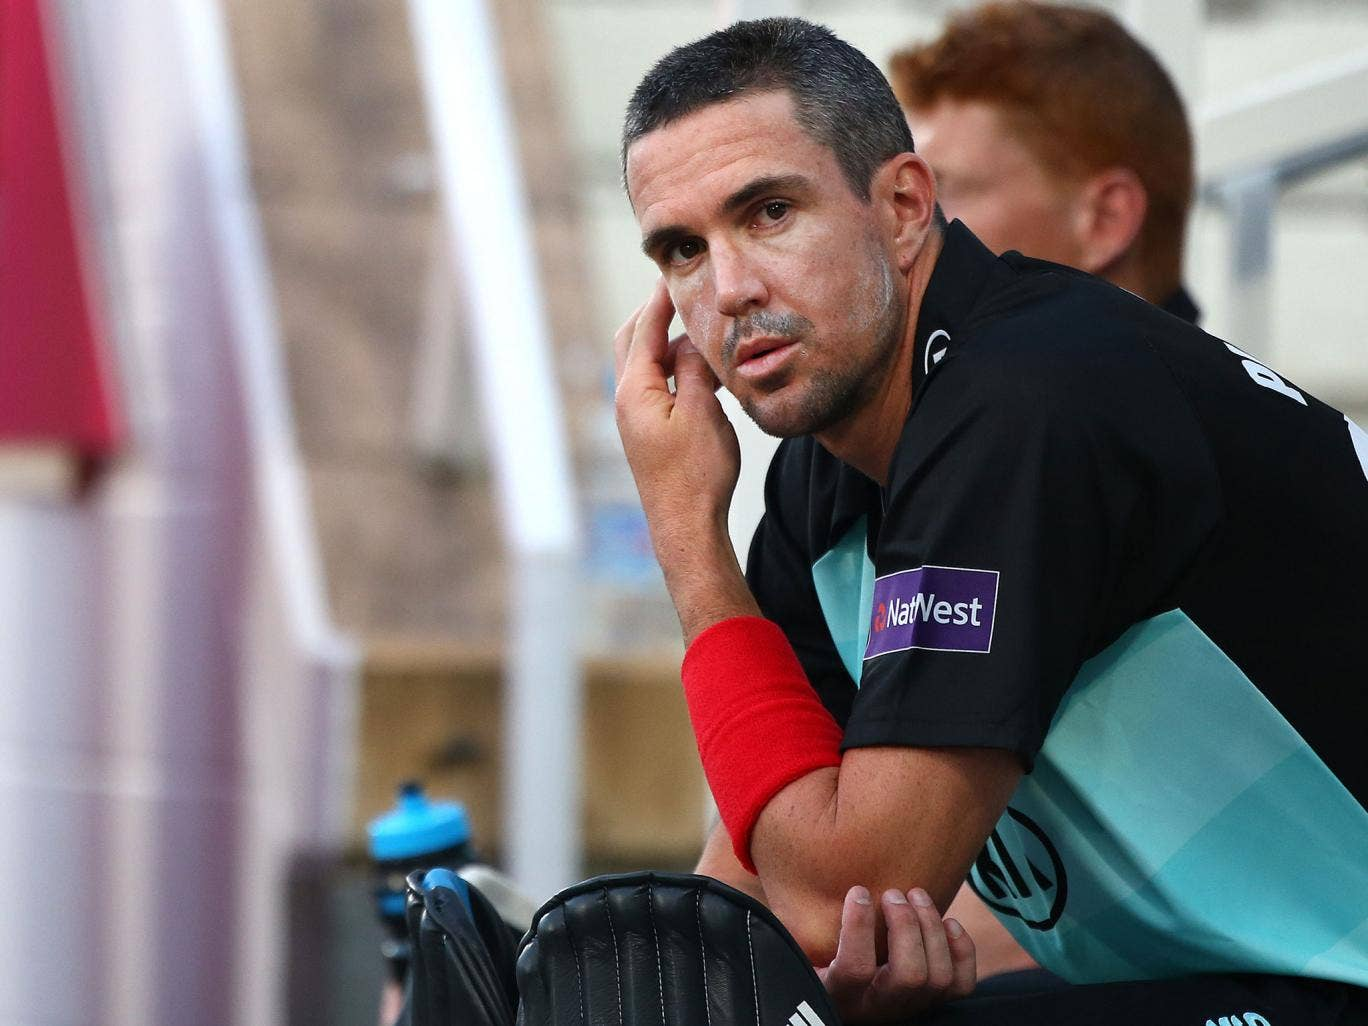 Kevin Pietersen of Surrey sits on the bench waiting to come on to bat during the Natwest T20 Blast match between Surrey and Sussex Sharks